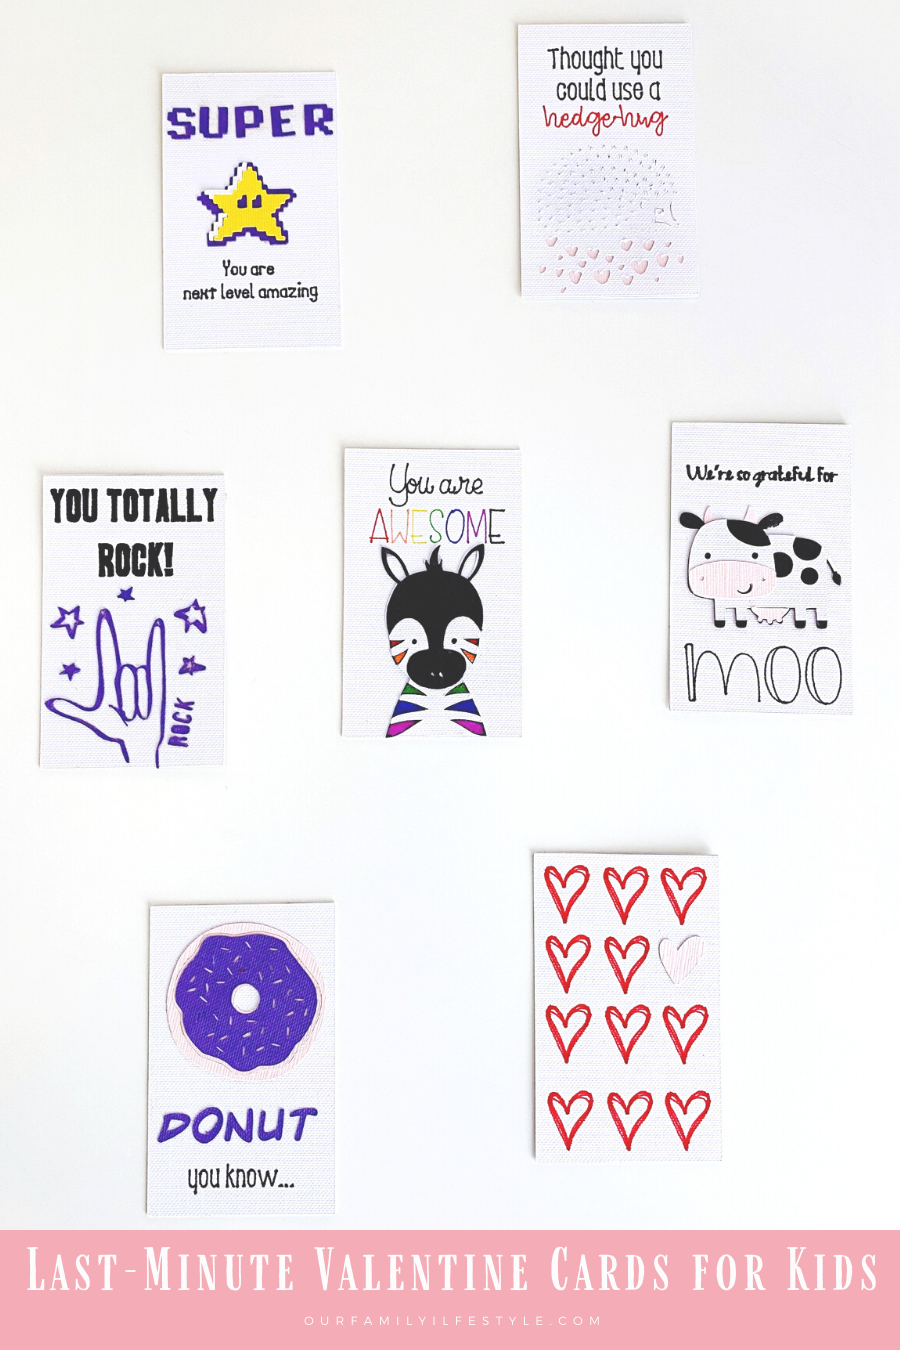 Last-Minute Valentine Cards for Kids